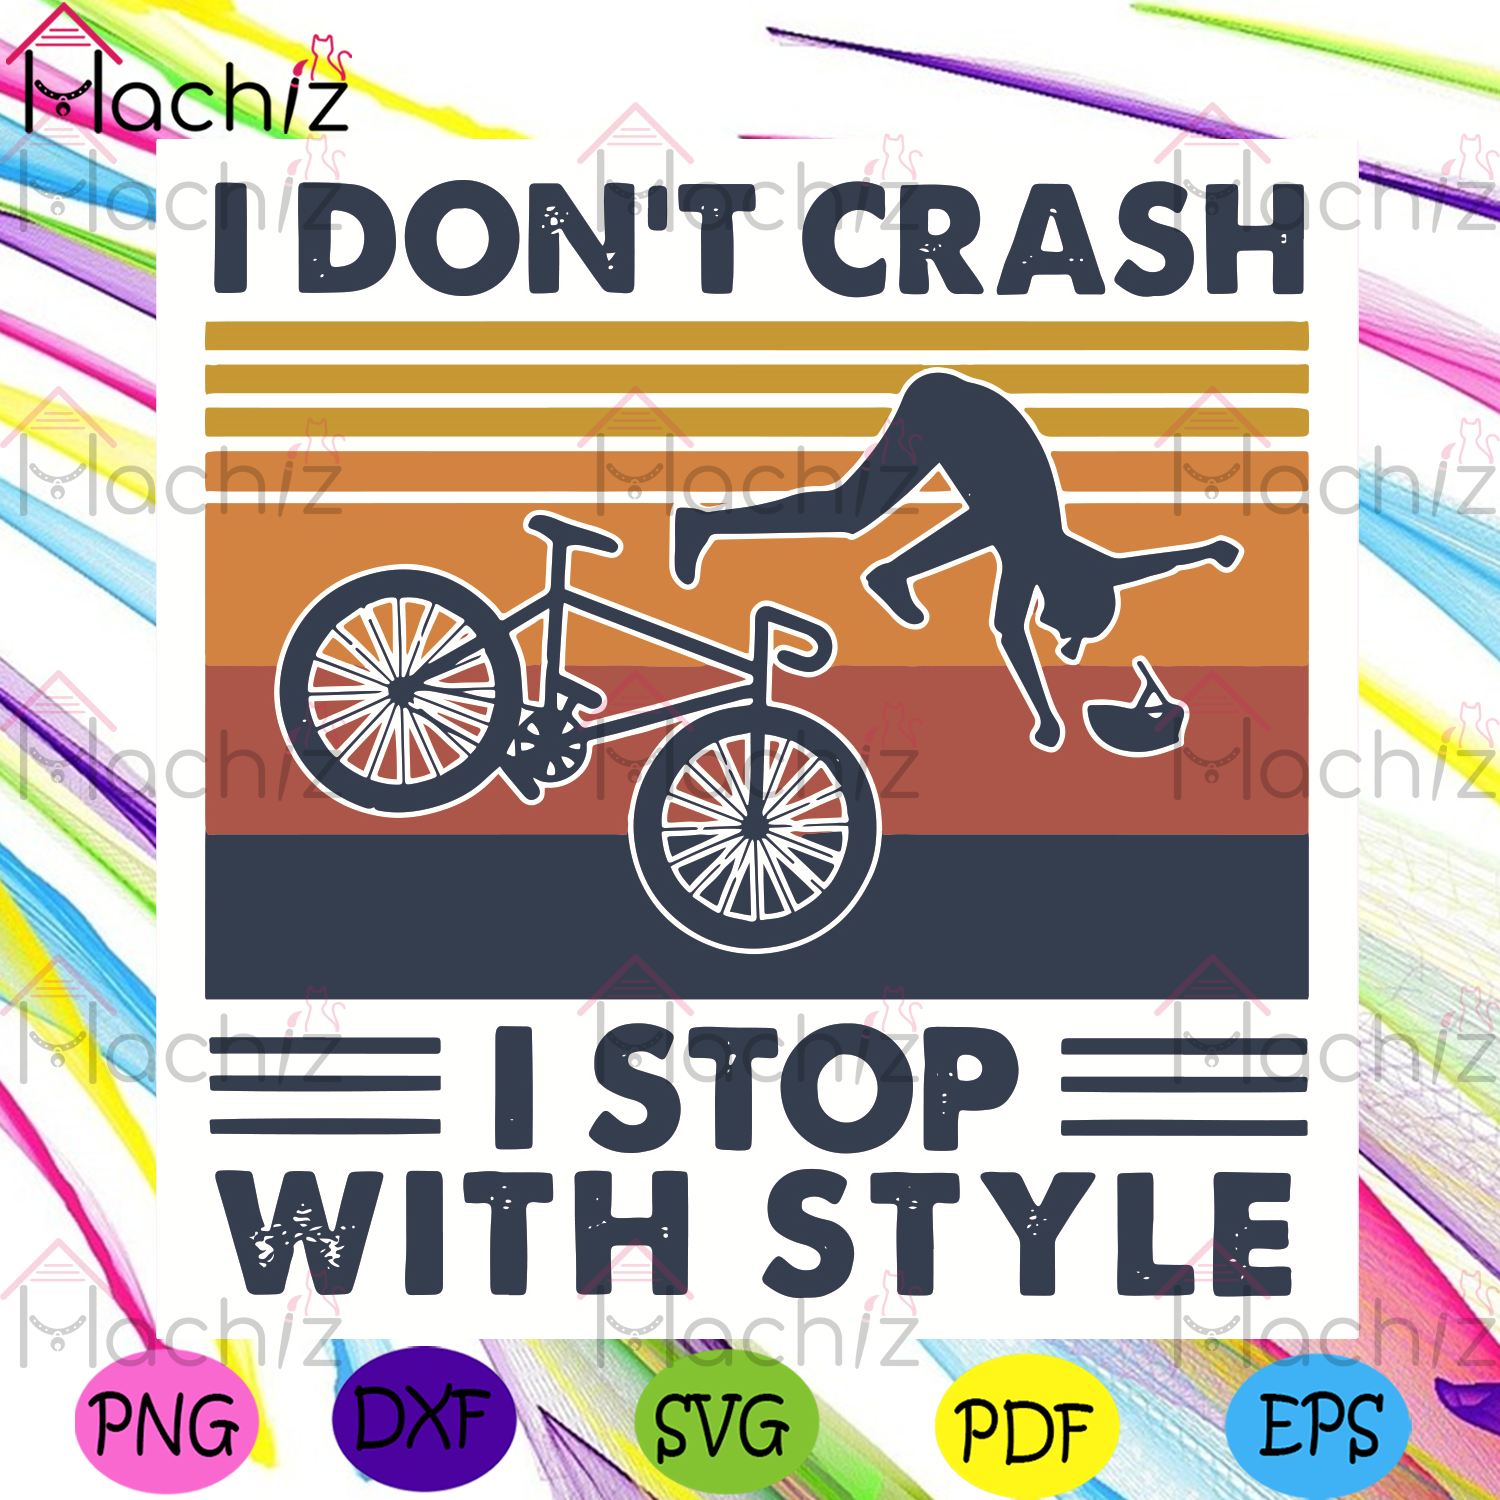 I Do Not Crash I Stop With Style Svg, Trending Svg, Crash Svg, Bicycle Svg, Driving Svg, Accident Svg, Fall Down Svg, Bicycle Lovers Svg, Bicycle Gifts Svg, Bicycle Accident Svg, Vintage Svg, Retro Svg